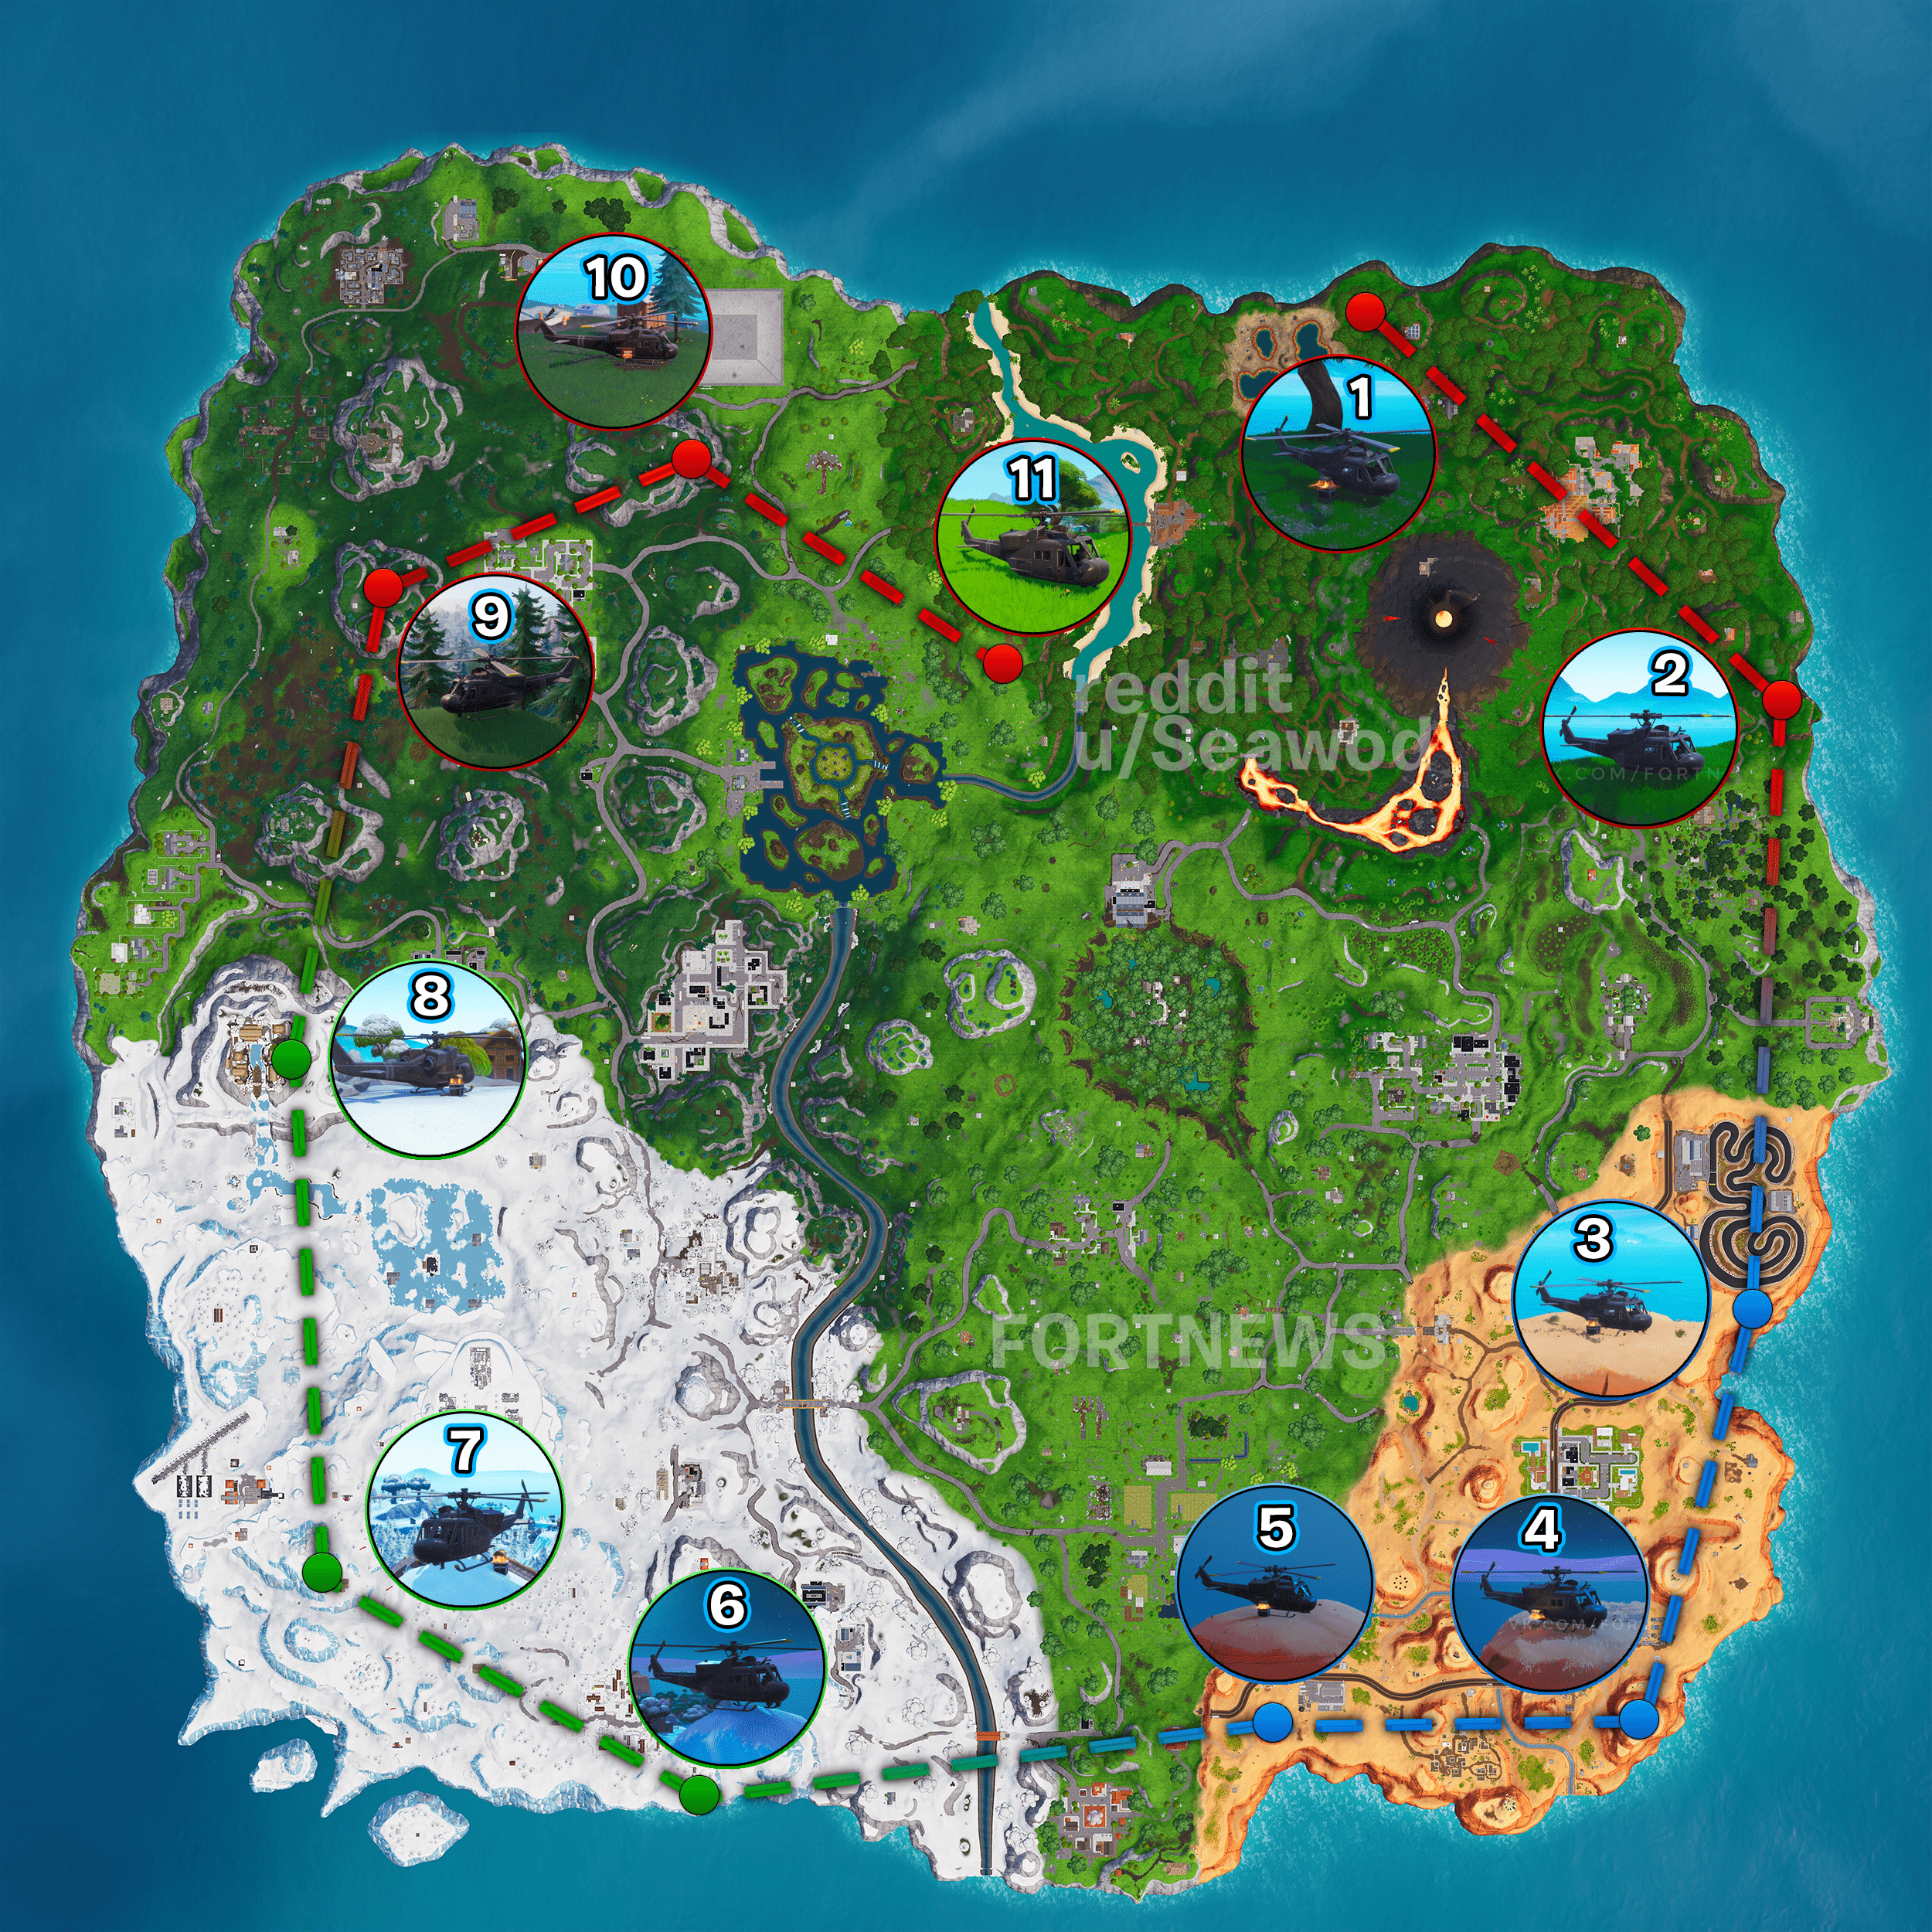 Fortnite Helicopter Map